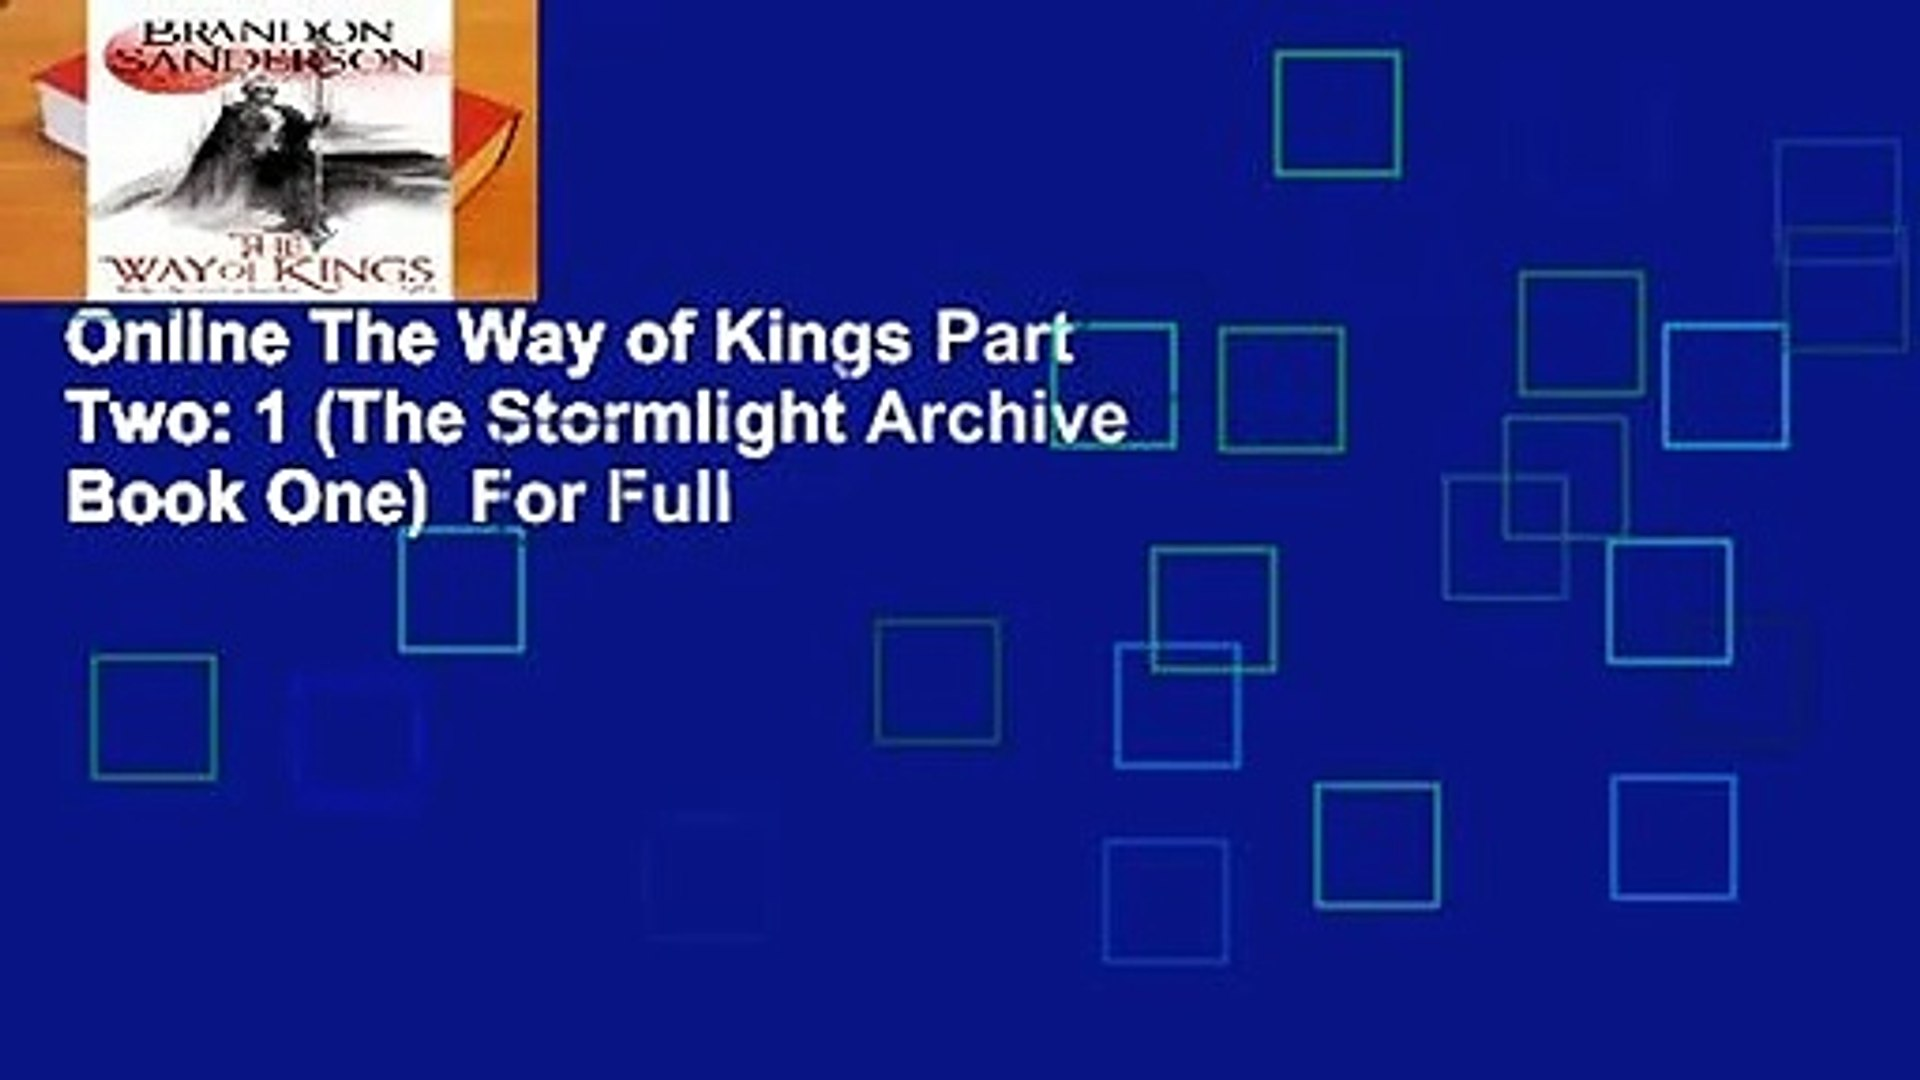 Online The Way Of Kings Part Two 1 The Stormlight Archive Book